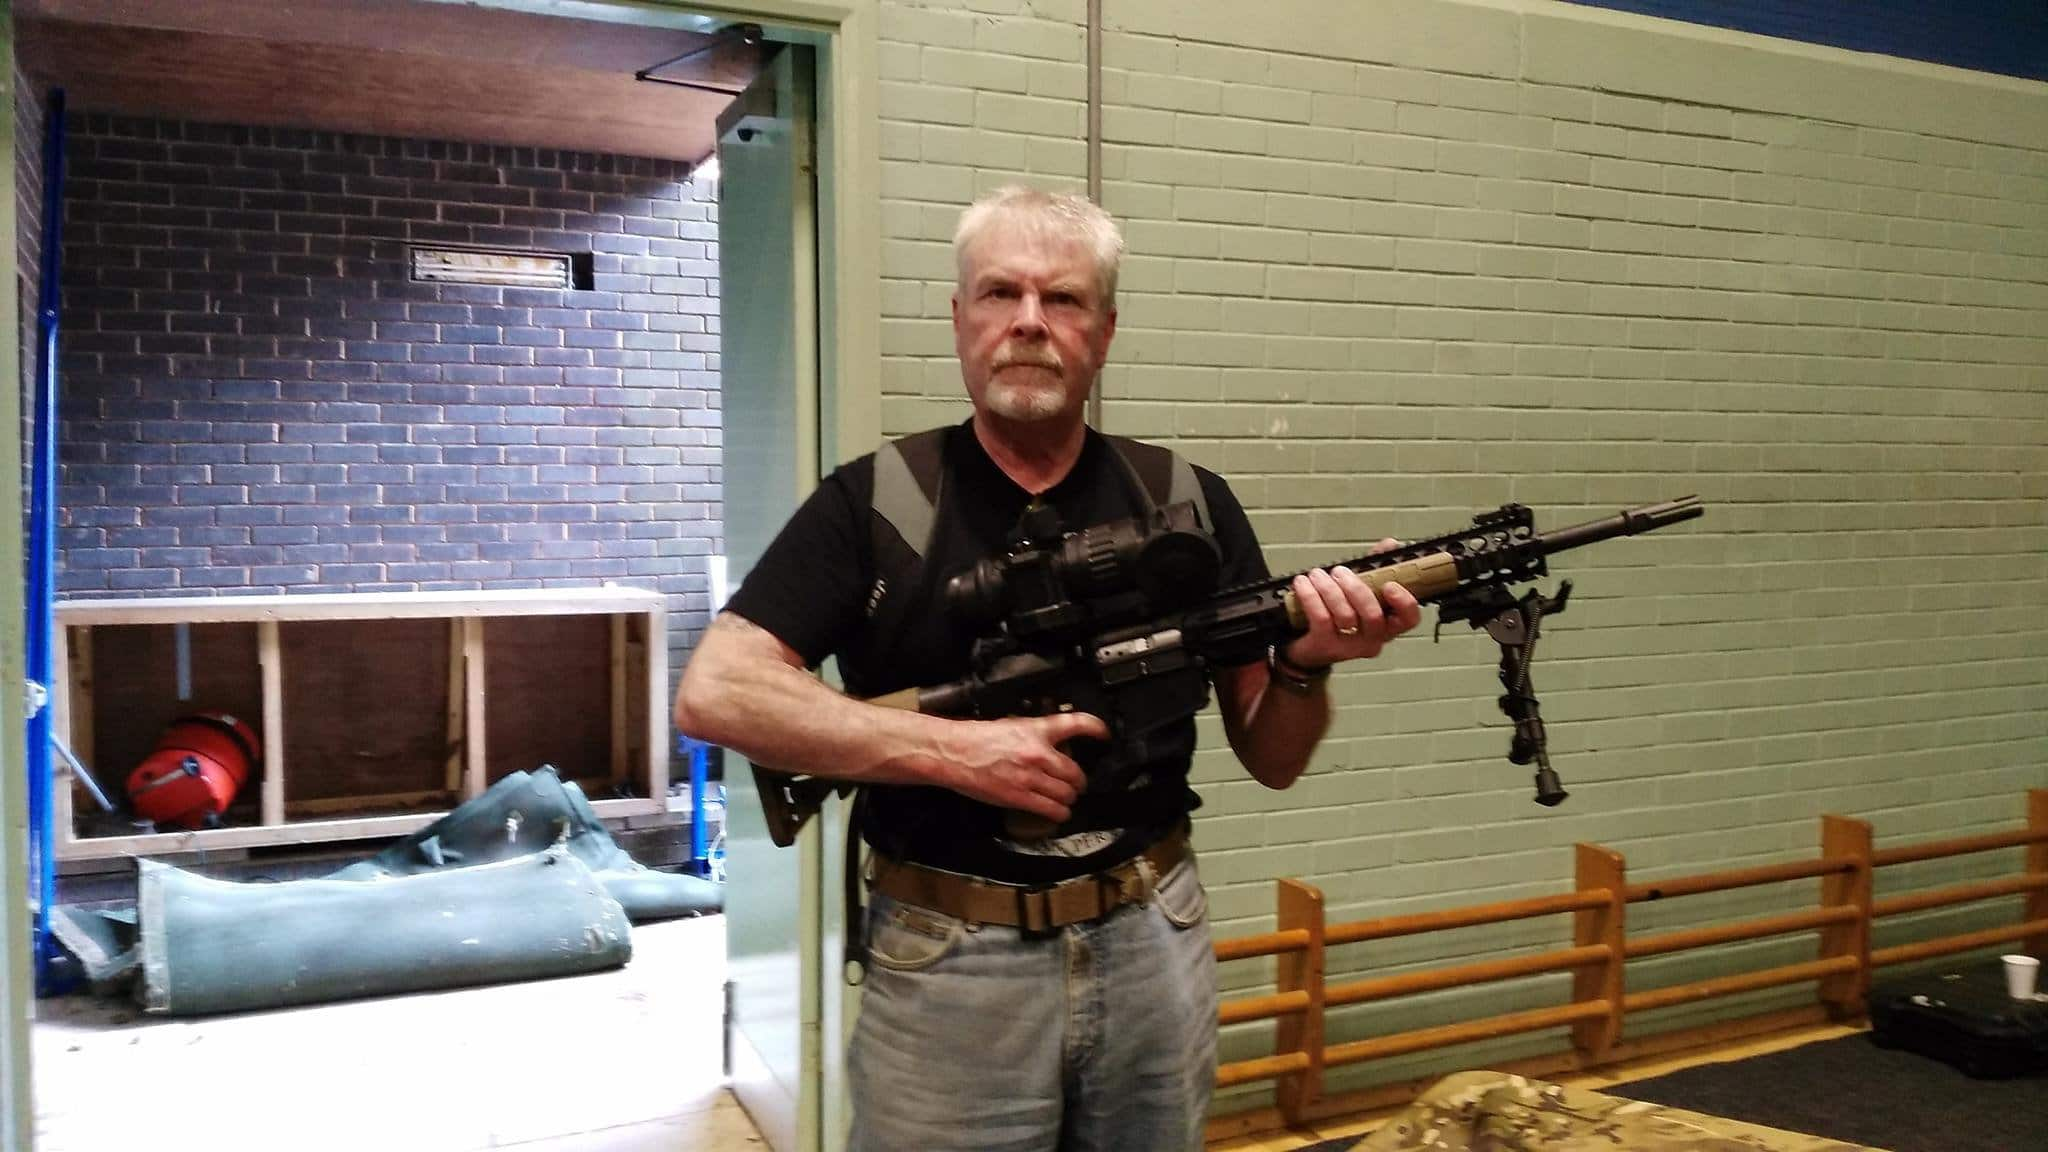 Stephen Searle, 64, is pictured holding a massive rifle (Image: SWNS)